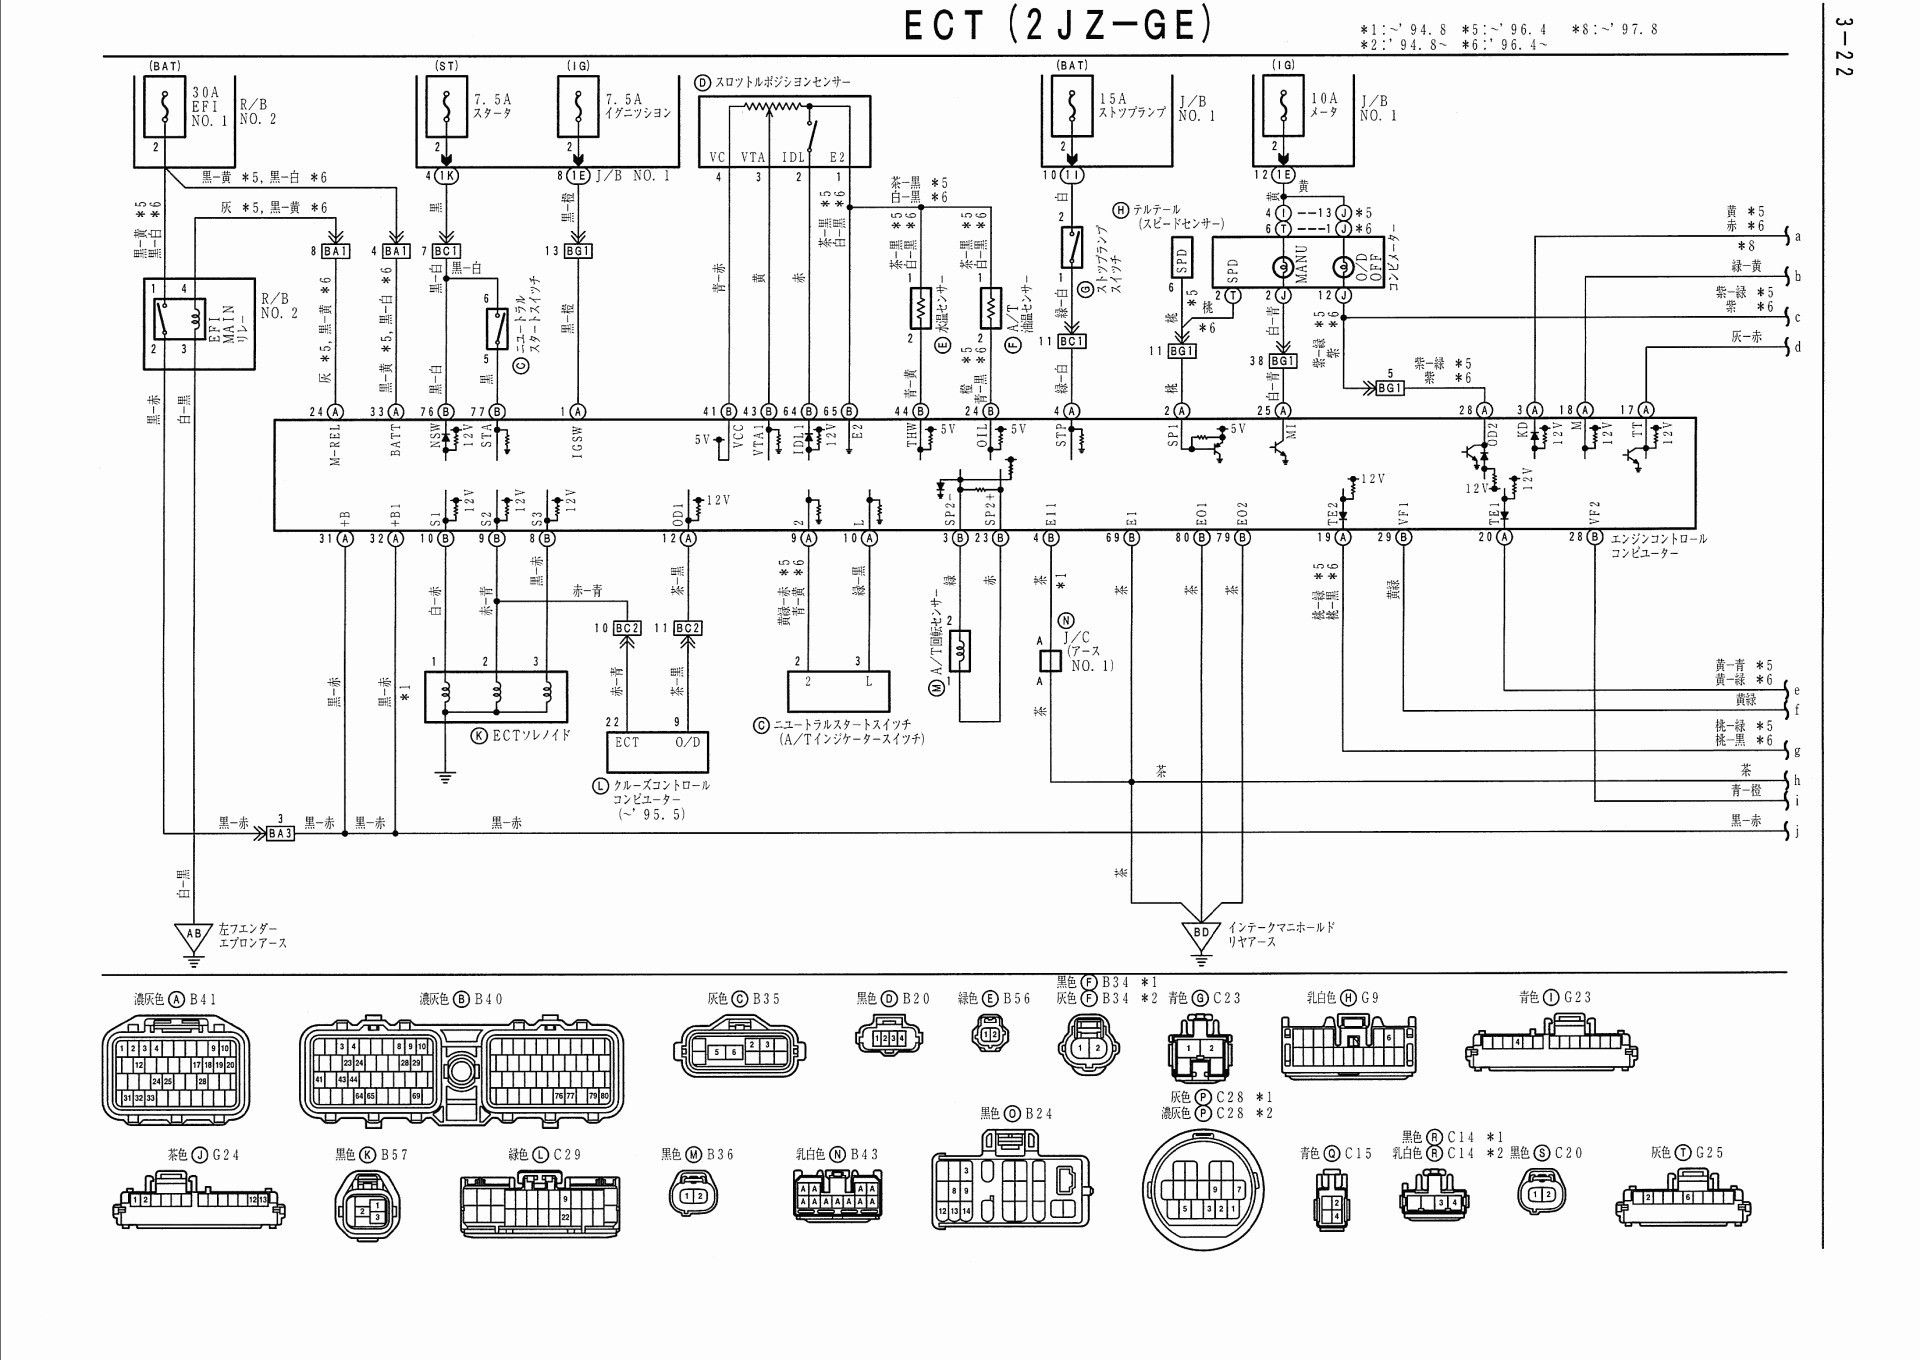 🏆 [diagram in pictures database] for bmw 530i hid headlight wiring diagram  just download or read wiring diagram - jean.orizet.design.onyxum.com  complete diagram picture database - onyxum.com